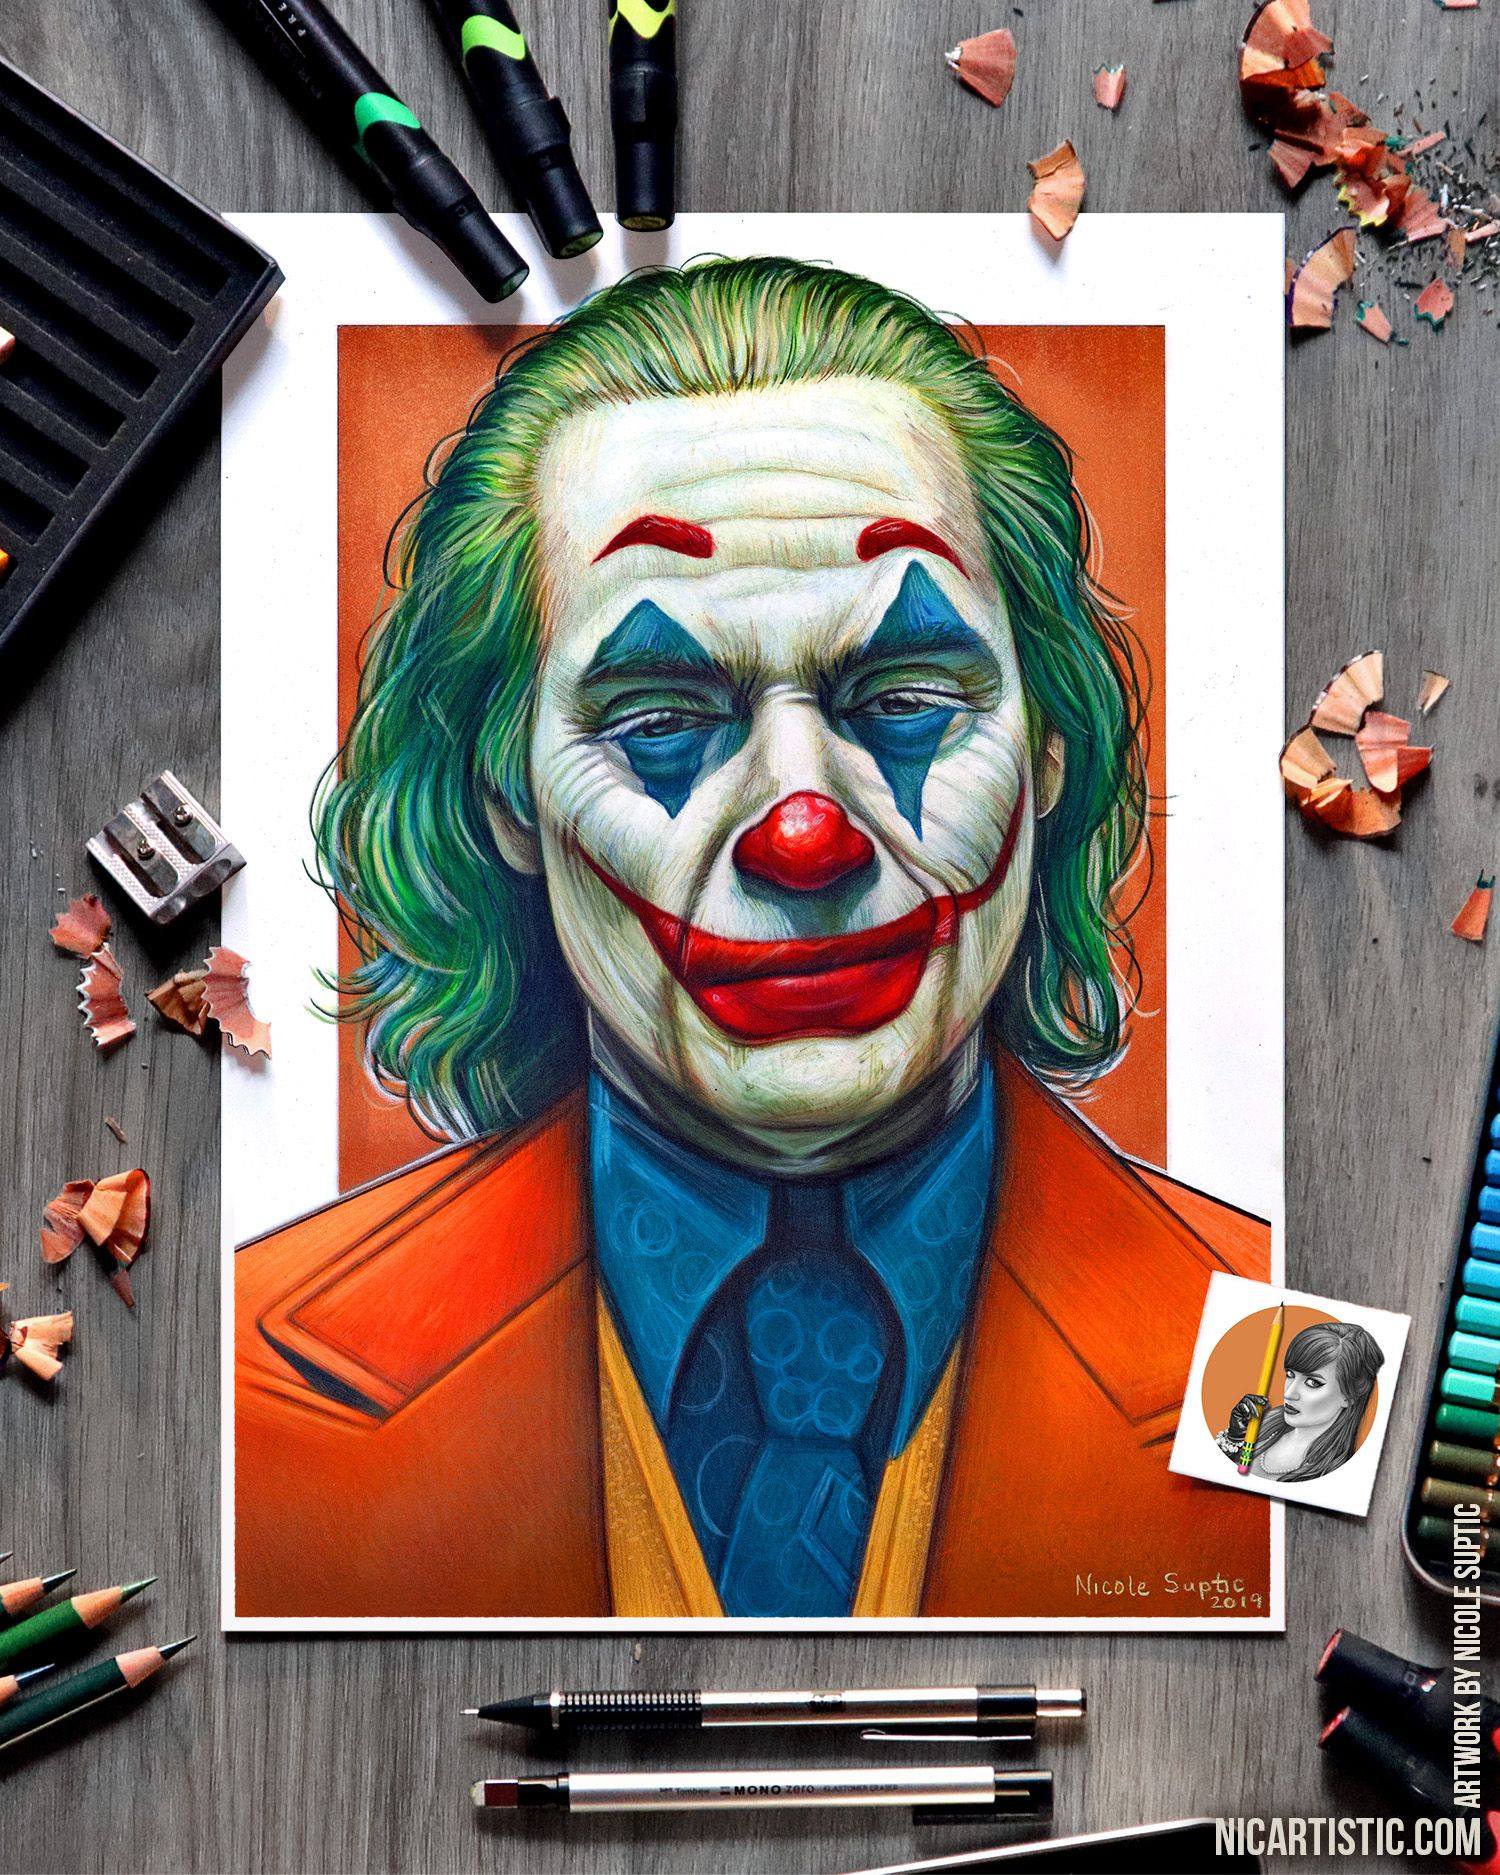 Drawing Joker With Colored Pencils And Markers Joaquin Phoenix Joker Drawings Art Markers Drawing Colored Pencil Artwork